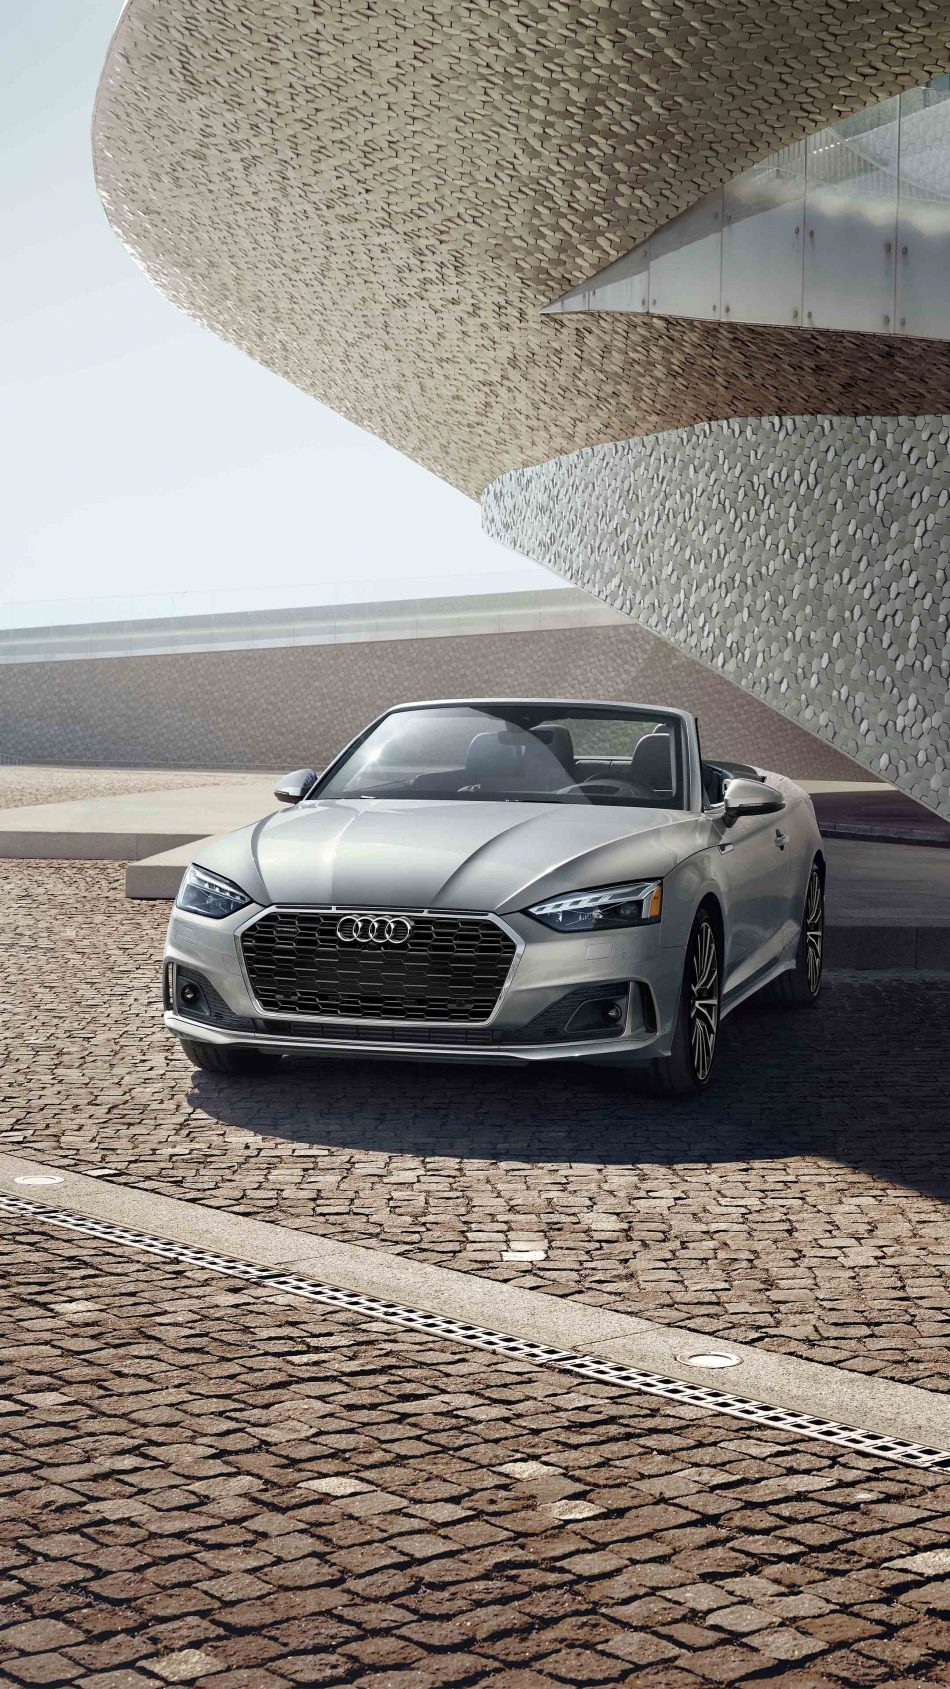 Audi A5 Cabriolet 45 TFSI 2020 4K Ultra HD Mobile Wallpaper